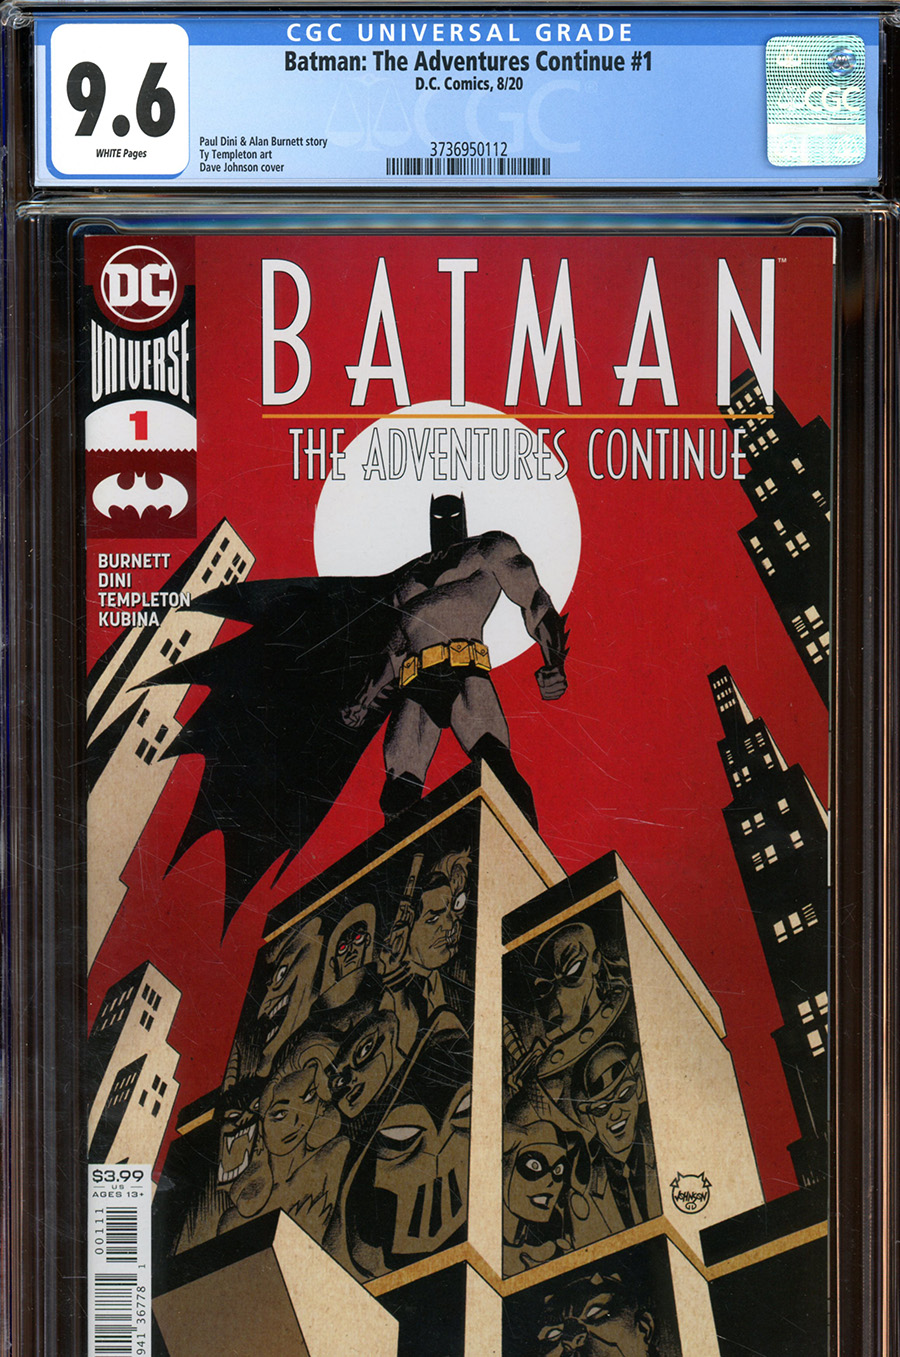 Batman The Adventures Continue #1 Cover F DF CGC Graded